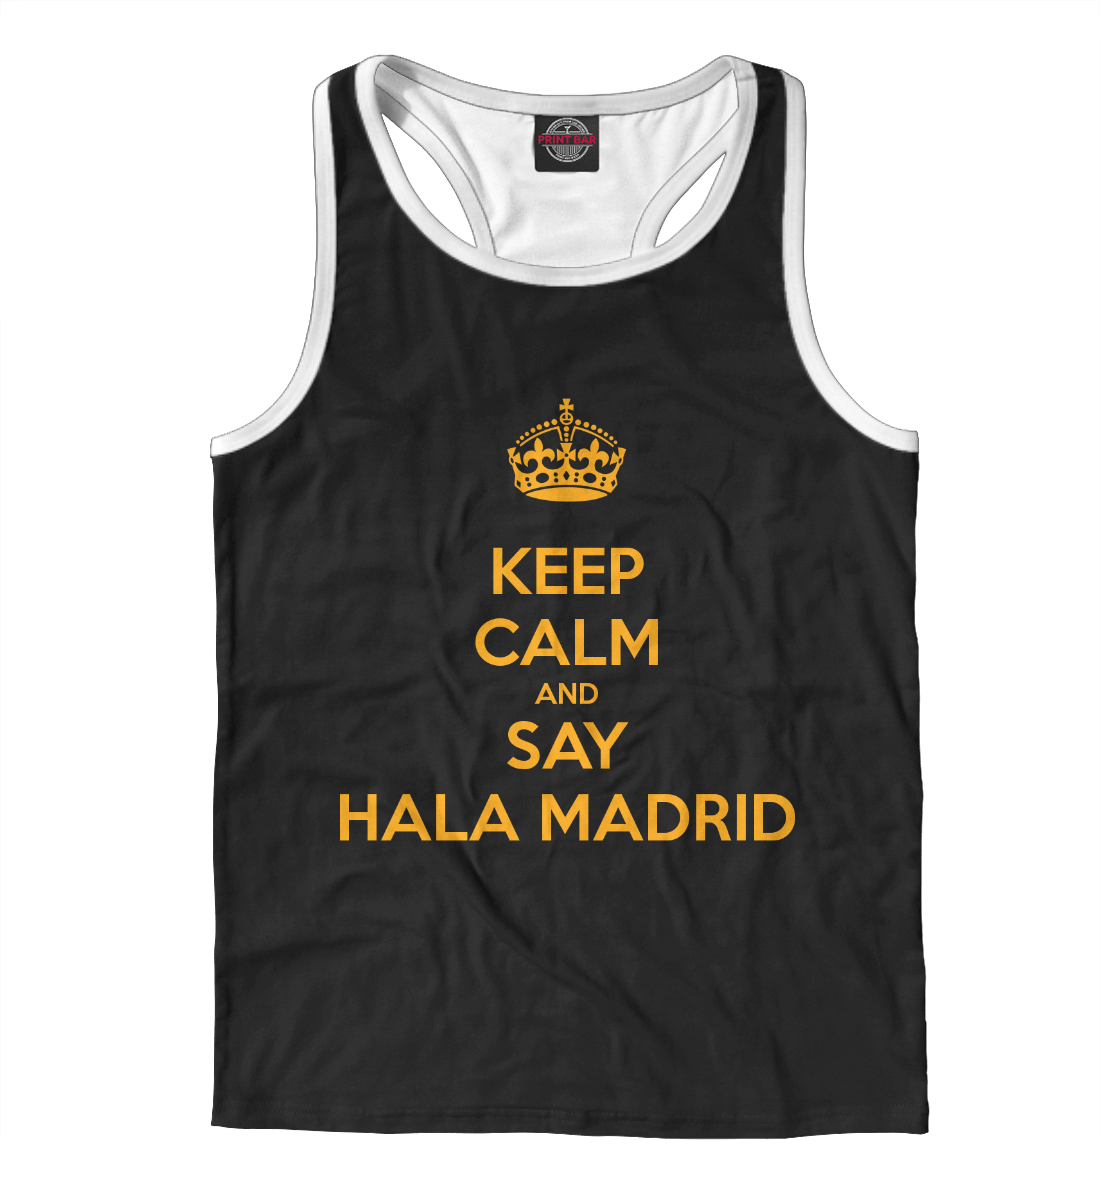 Купить Hala Madrid, Printbar, Майки борцовки, REA-745756-mayb-2